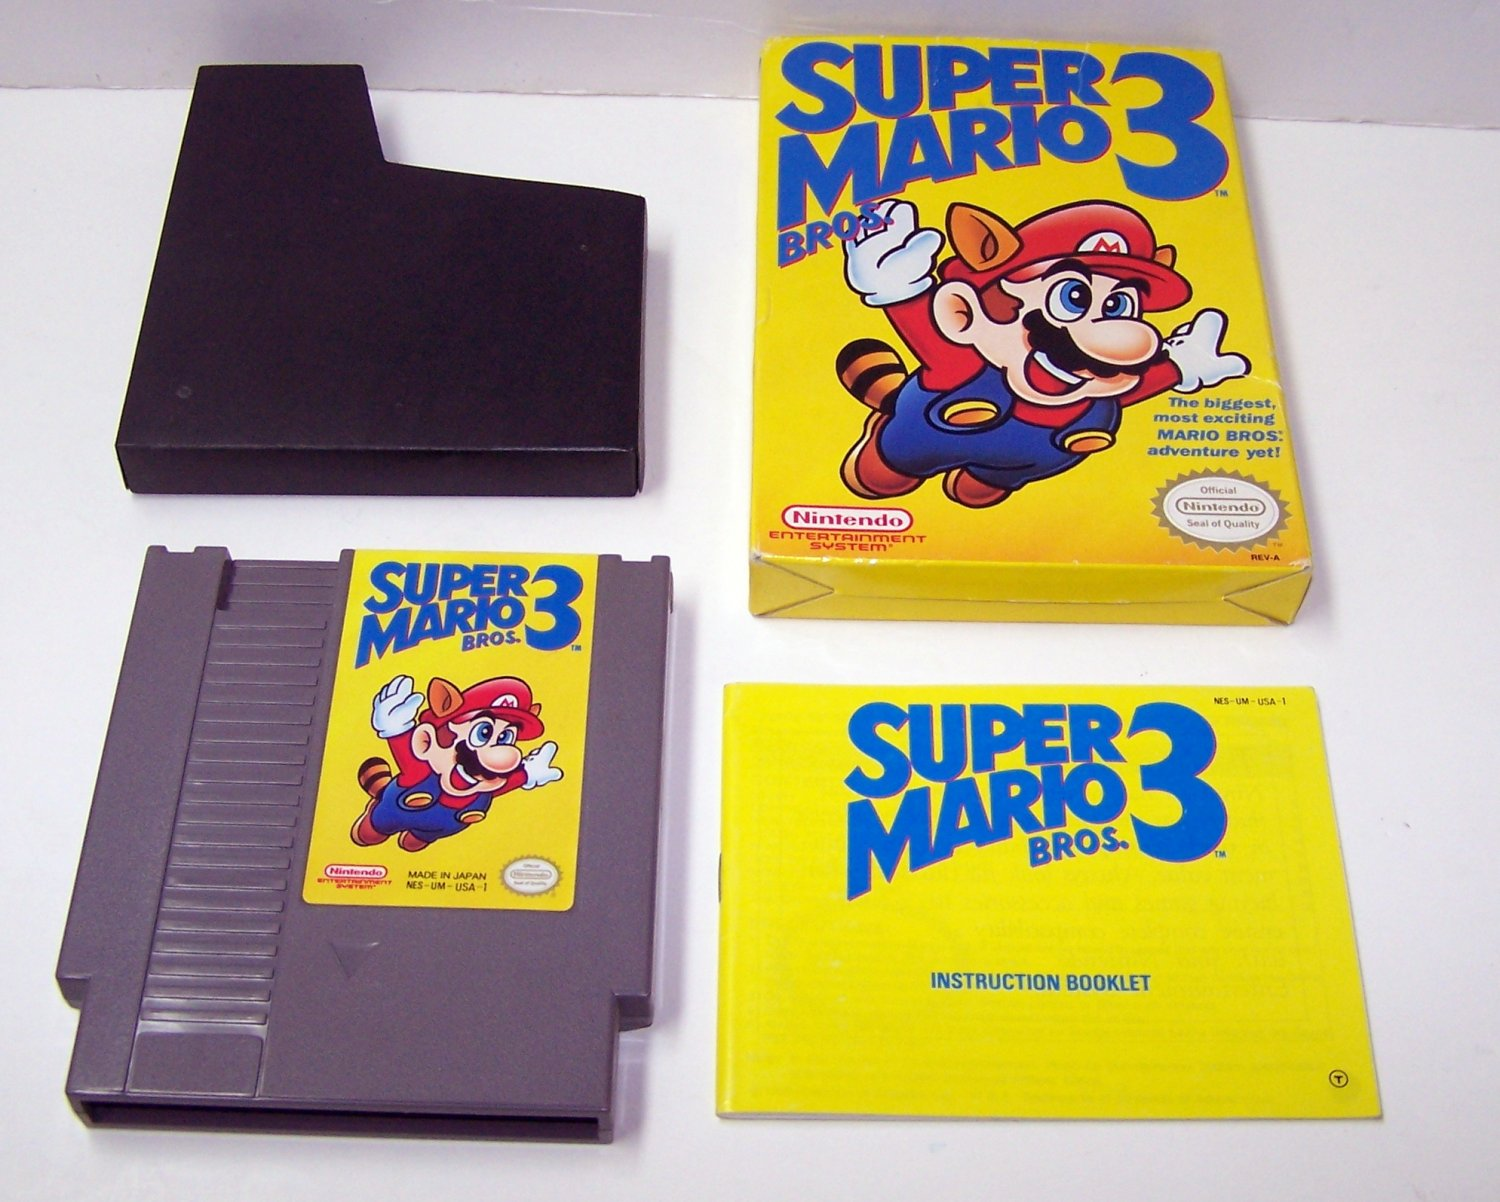 SUPER MARIO BROS 3 Original 8-bit Nintendo NES Game Cartridge Complete